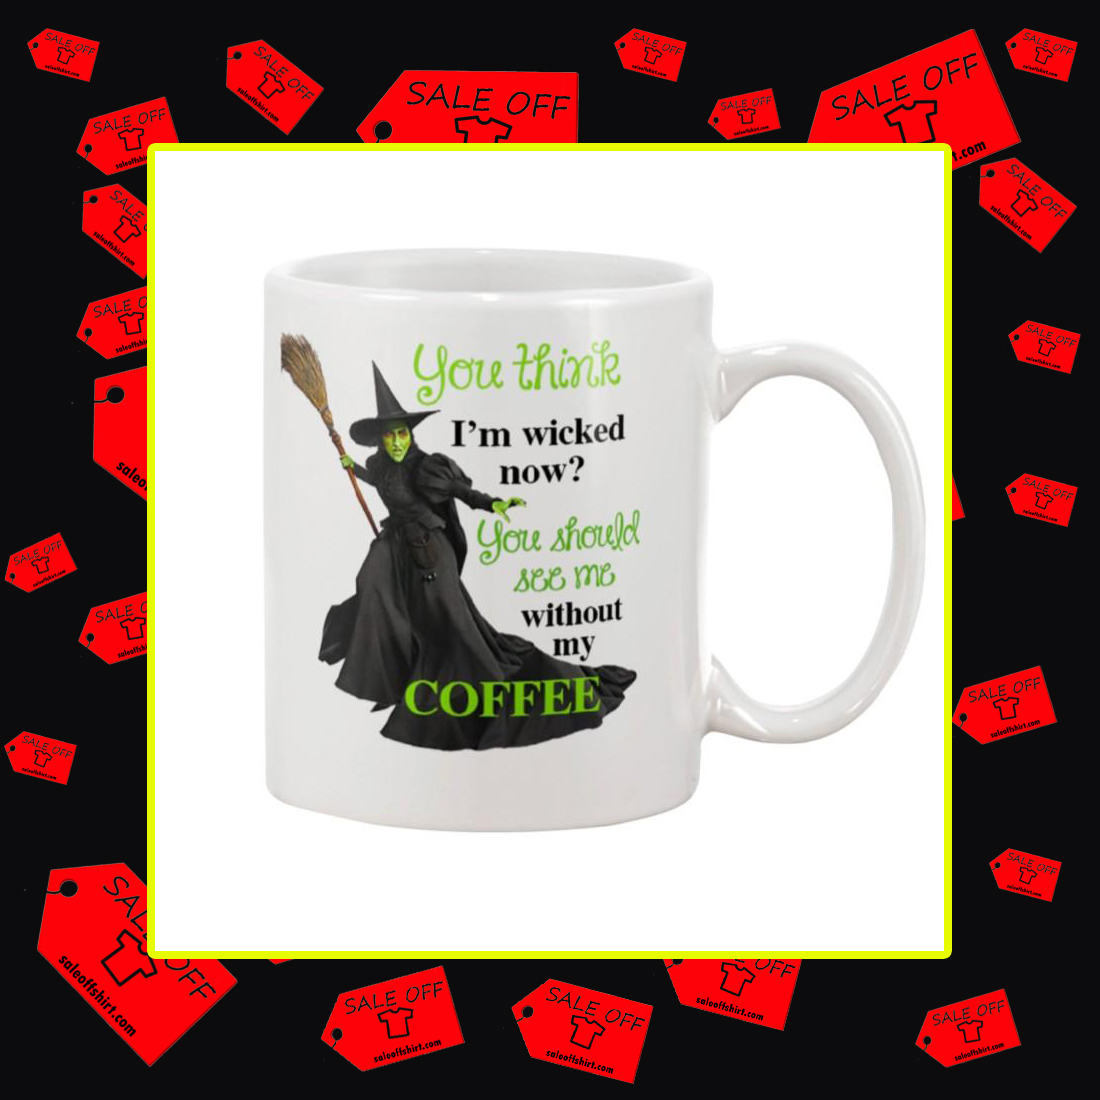 You think I'm wicked now you should see me without my coffee mug - white